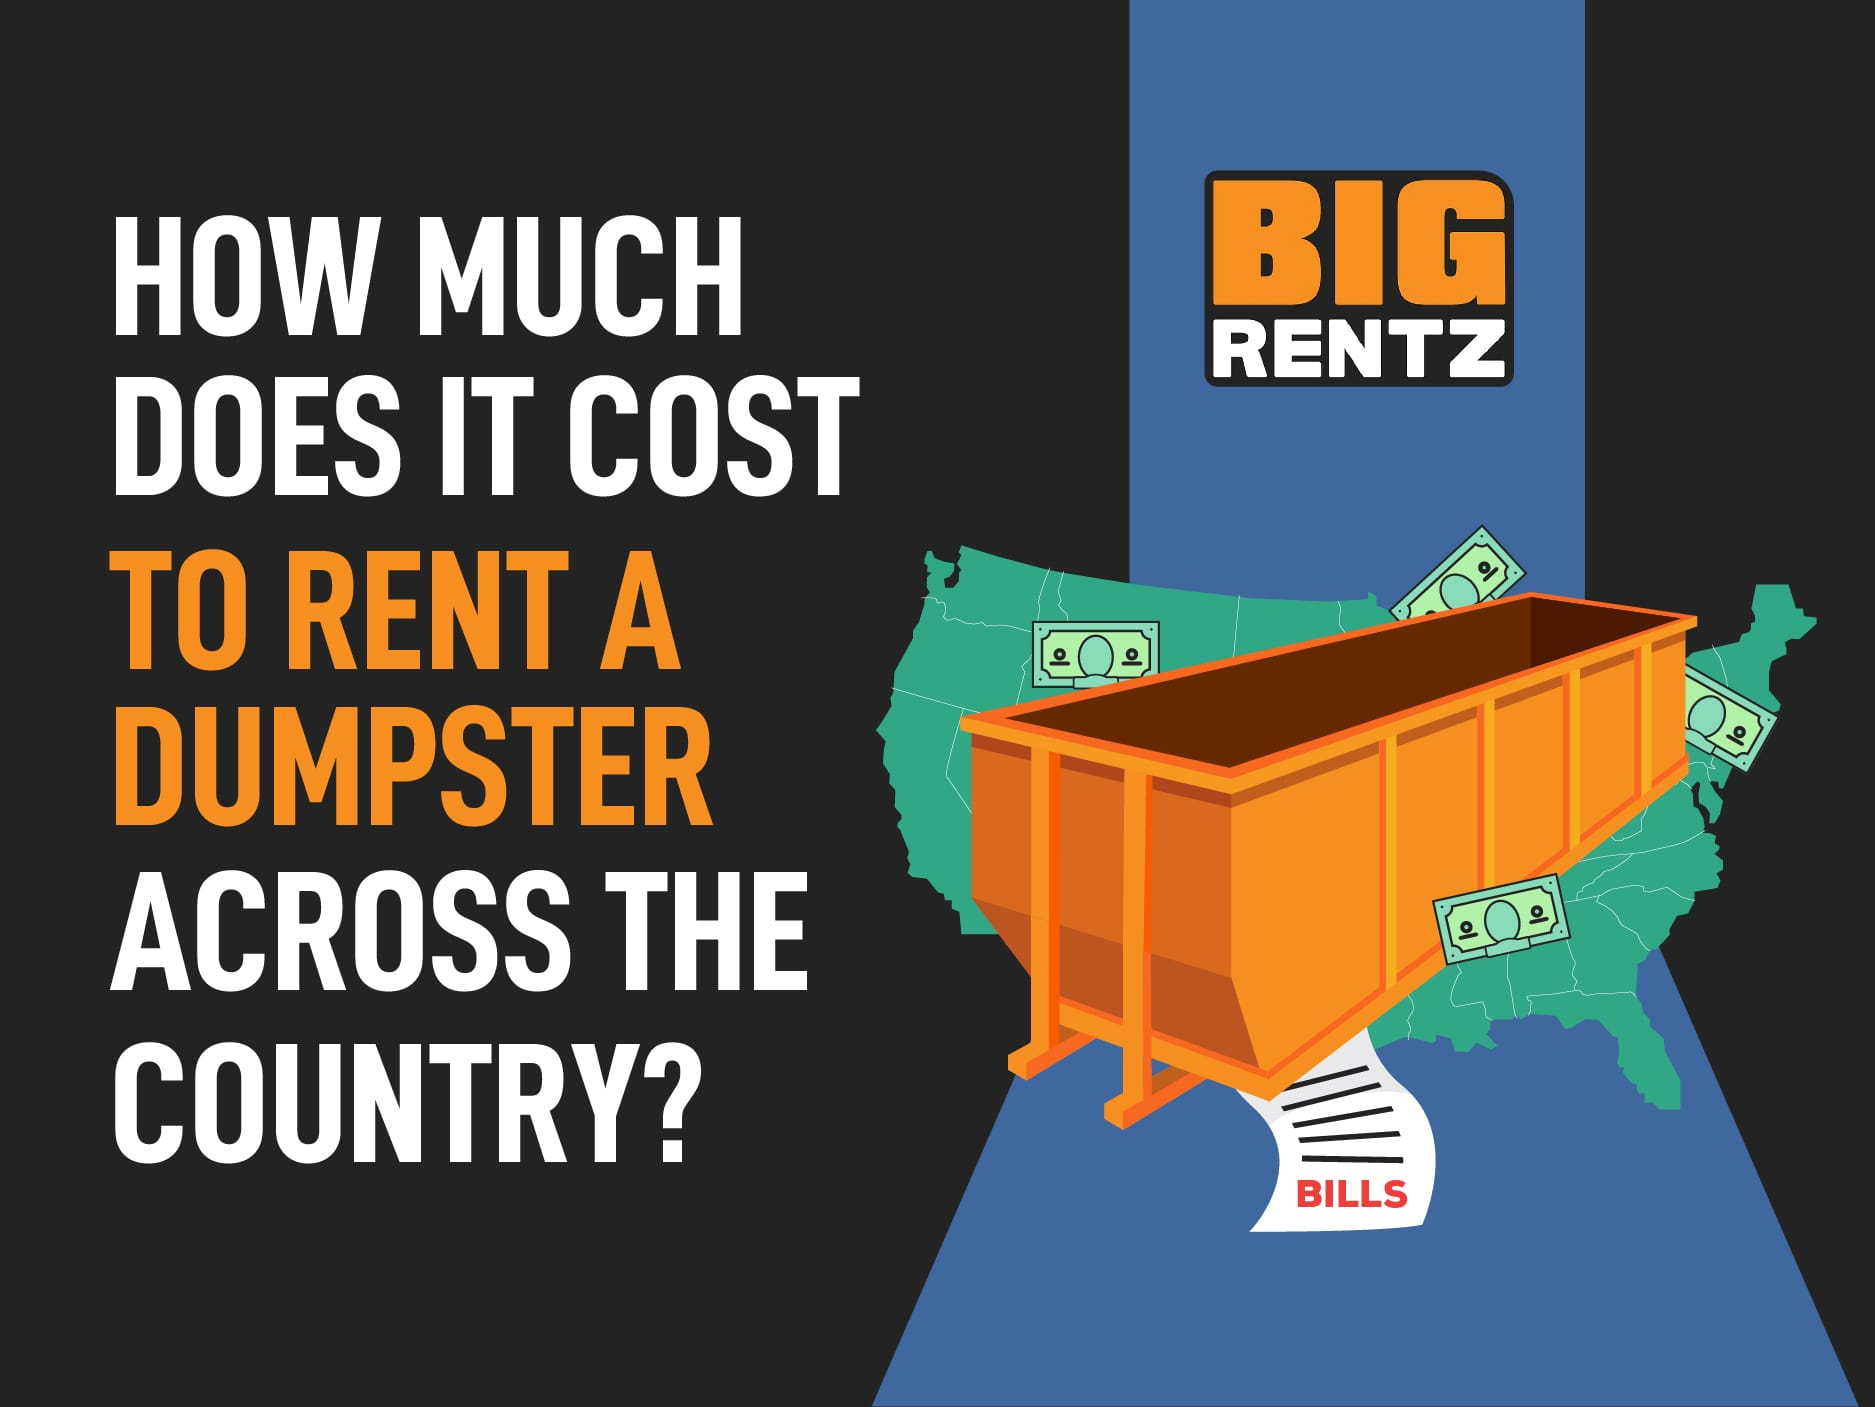 How Much Does it Cost to Rent a Dumpster?